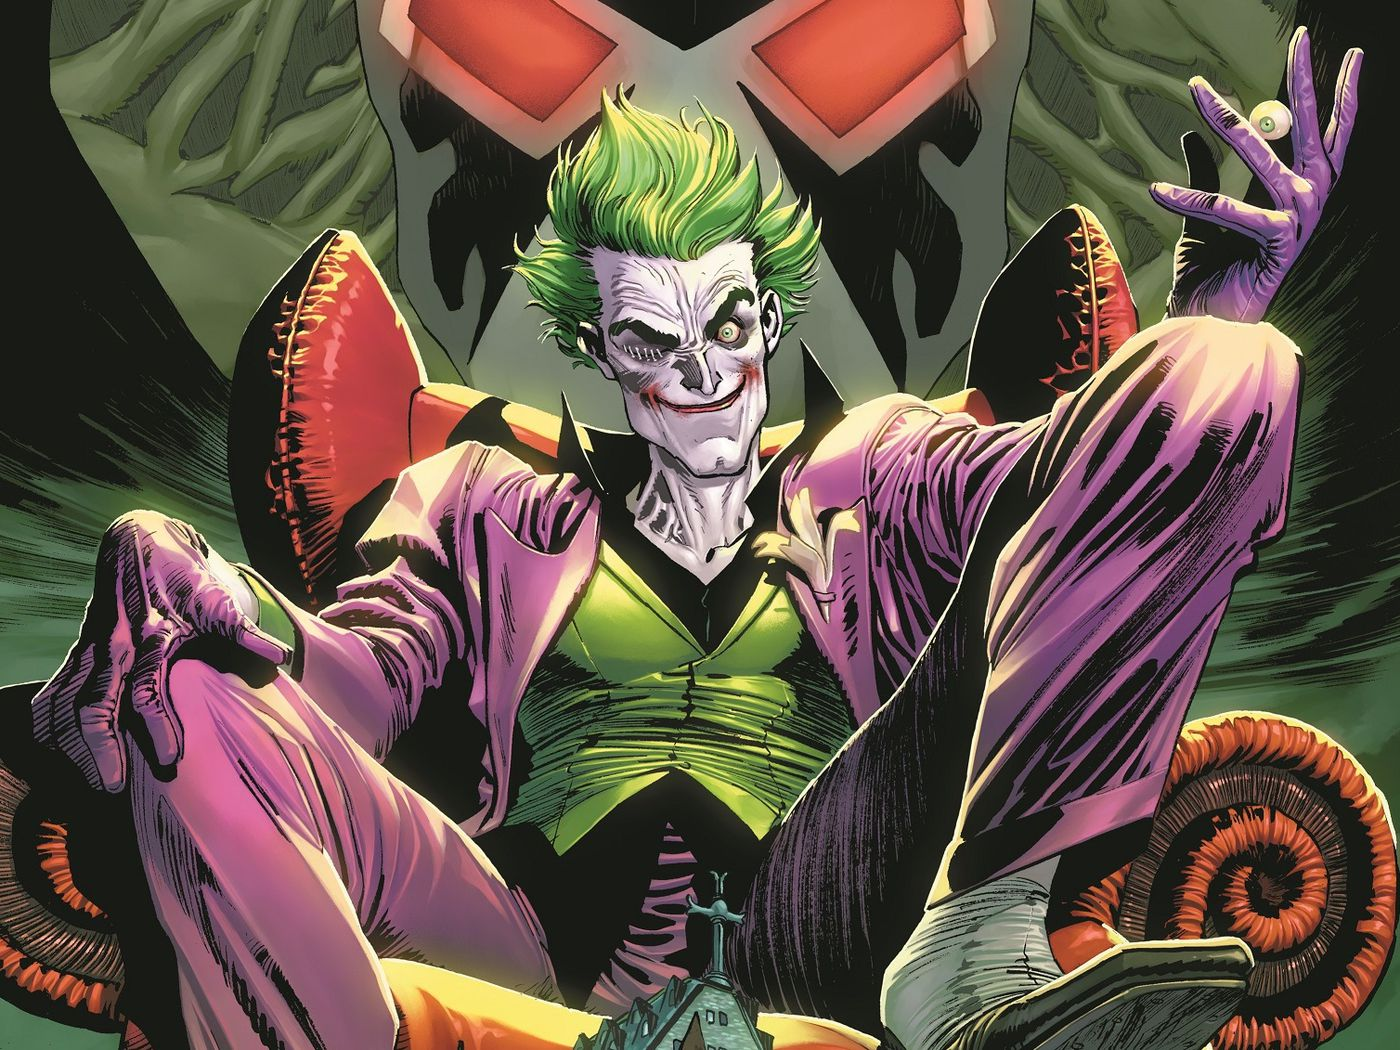 Joker by Tynion and March